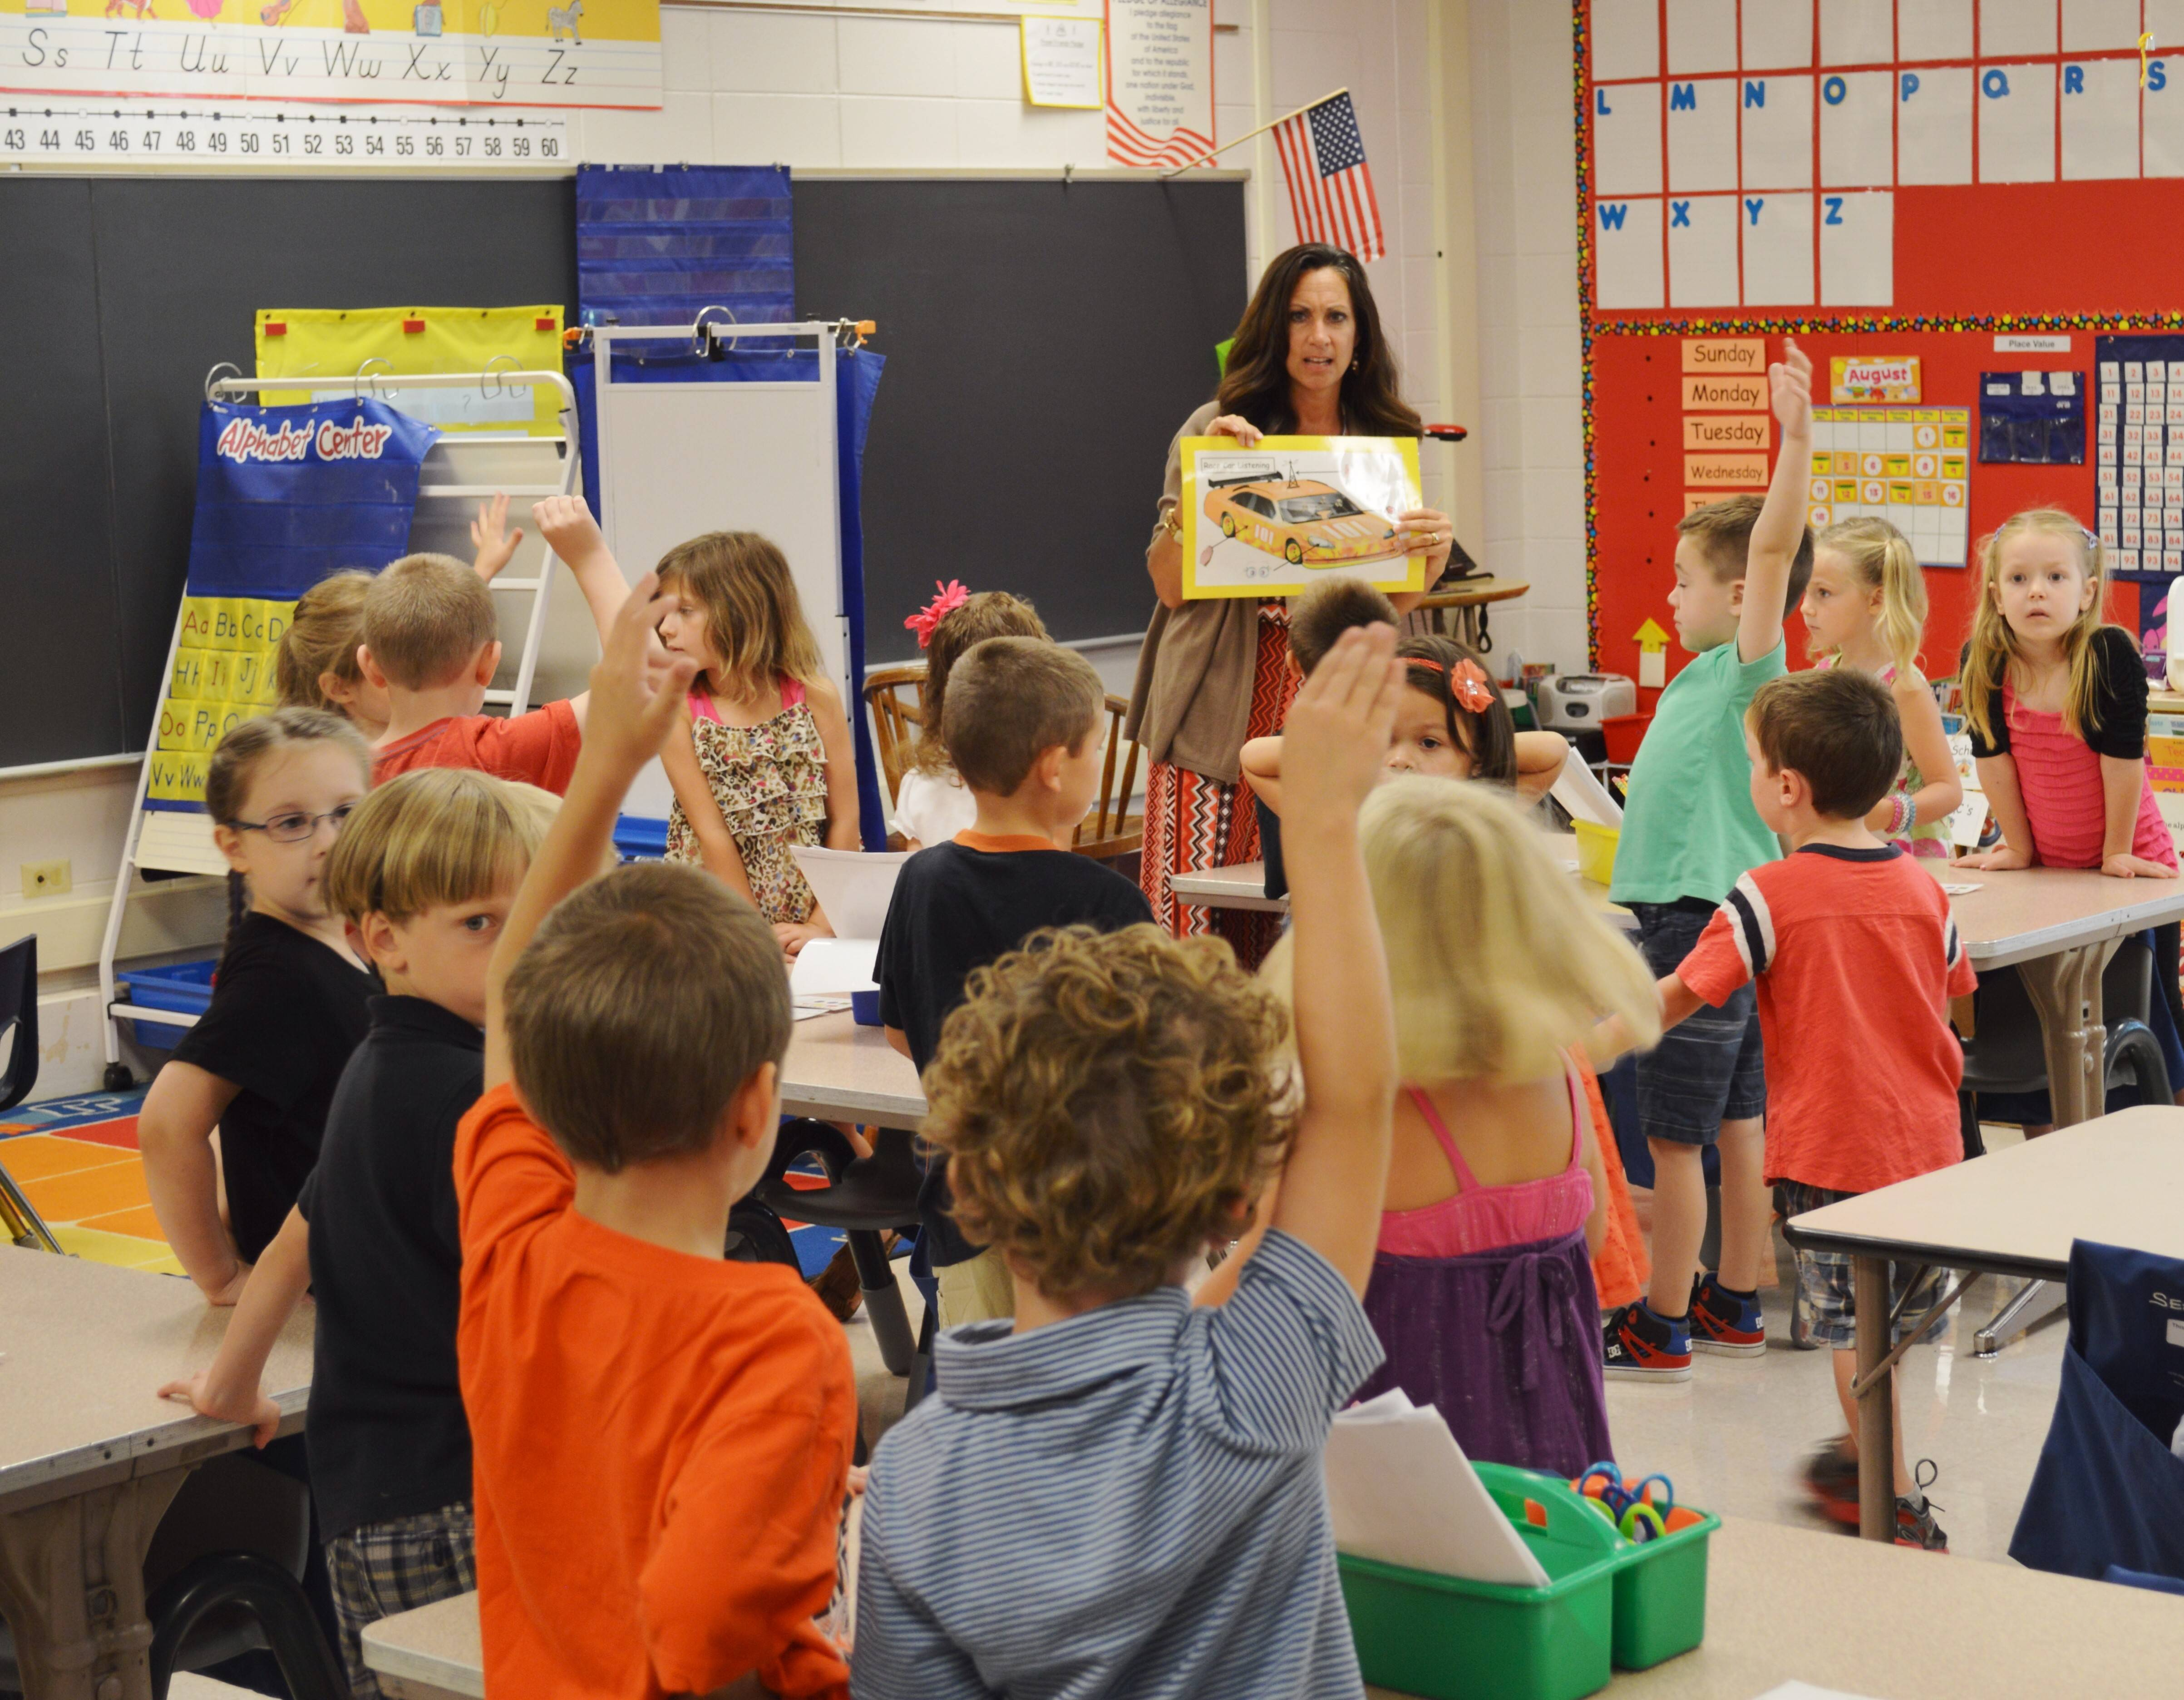 Munhall Elementary kindergarten teacher Amy Fronk started students Wednesday with a lesson on how to calmly and slowly maneuver their cars (meaning themselves) around the classroom without getting jammed up when it's time for a group sit-down.